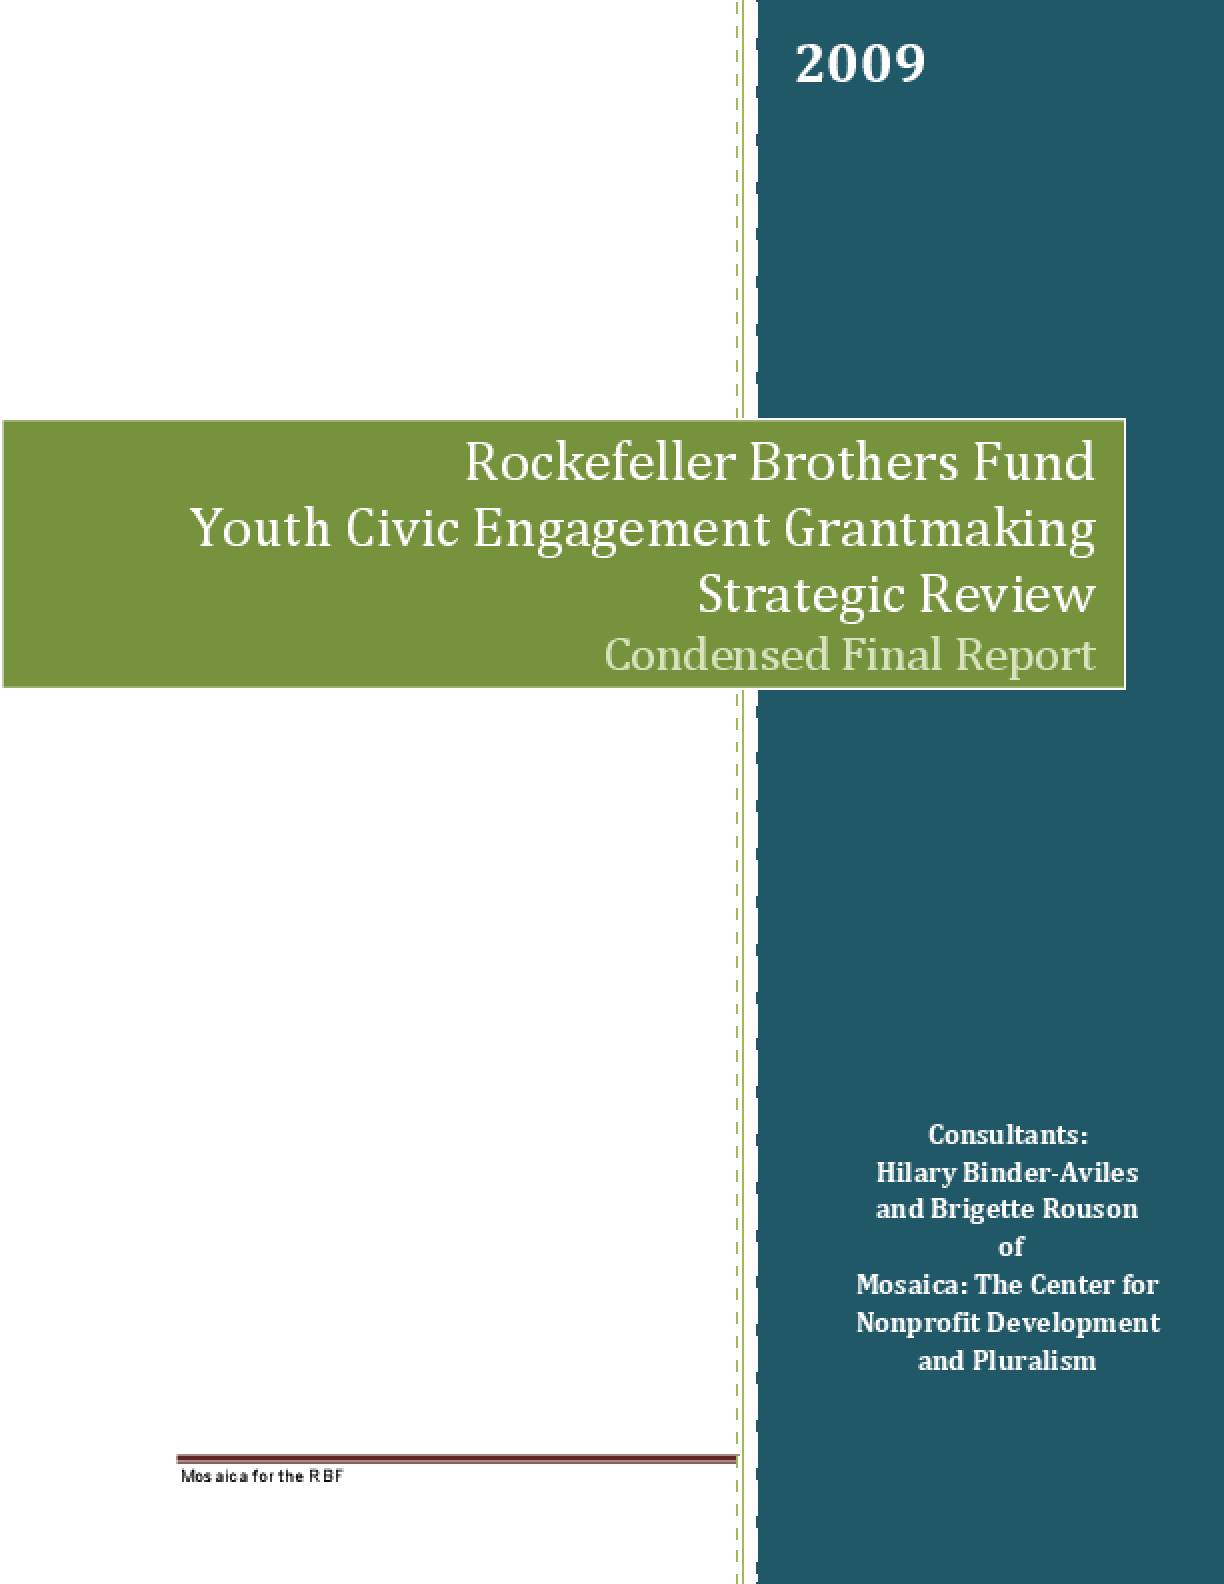 Youth Civic Engagement Grantmaking: Strategic Review